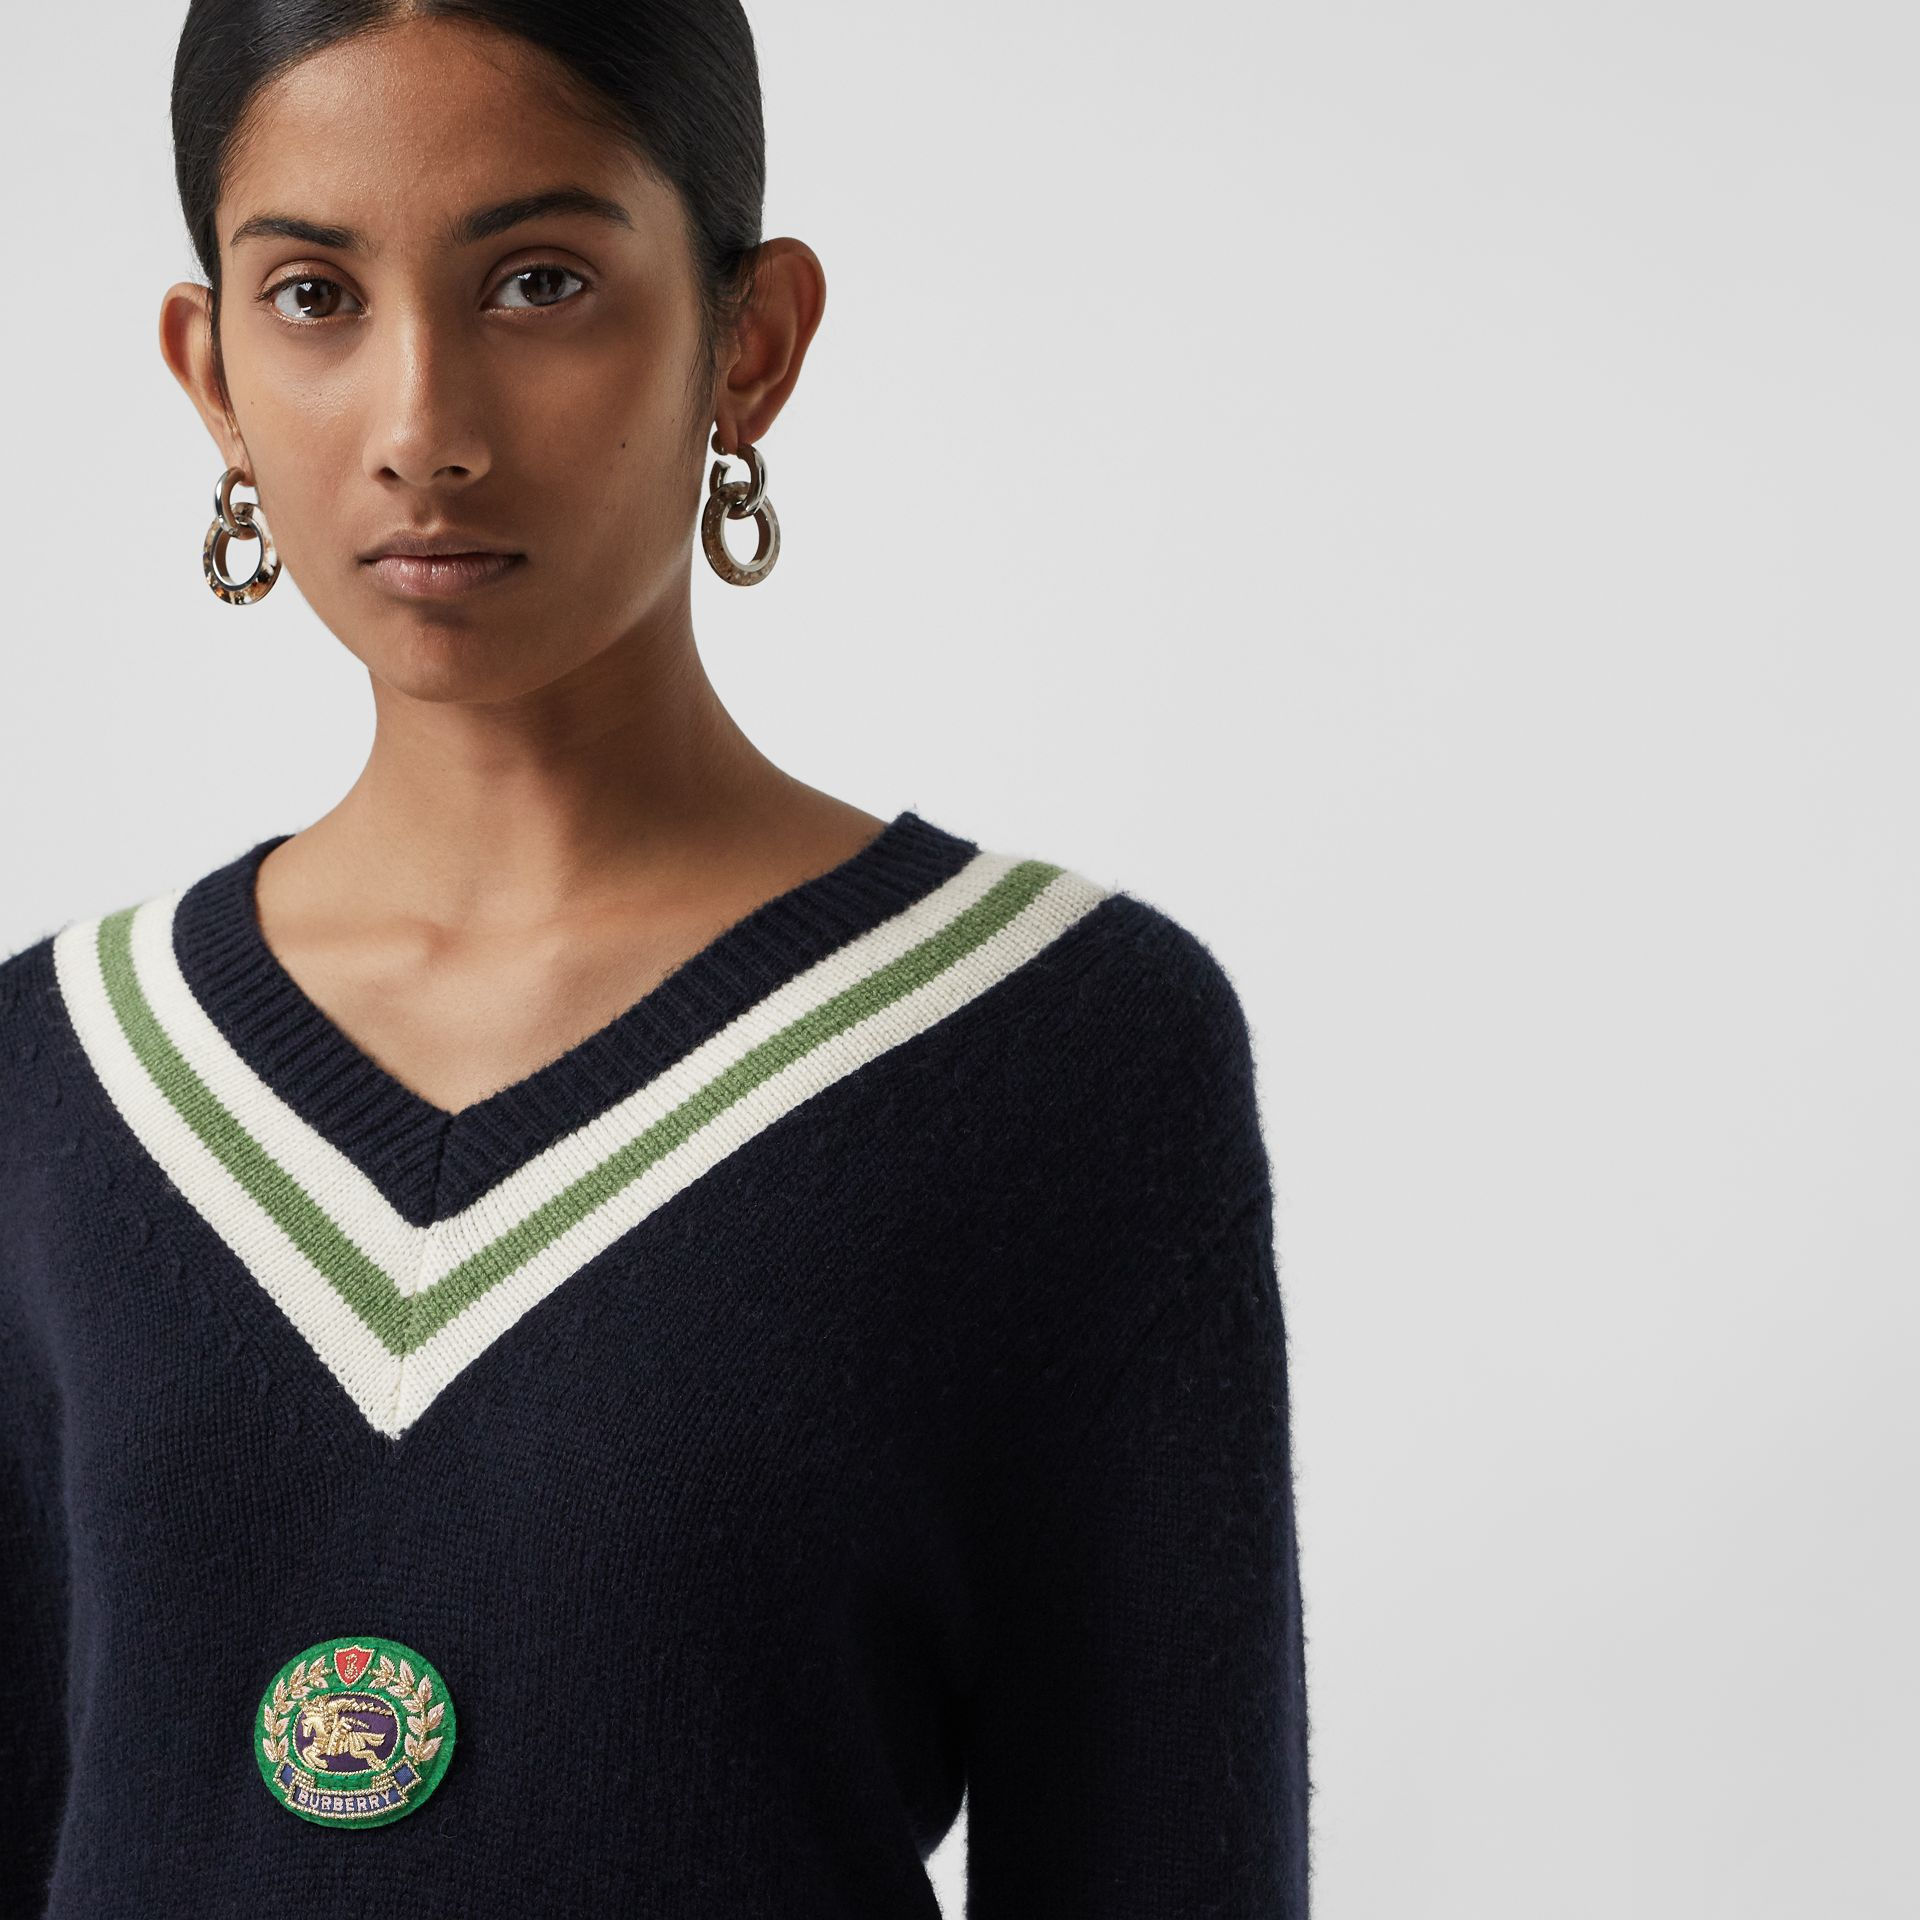 Embroidered Crest Wool Cashmere Sweater in Navy - Women | Burberry United Kingdom - gallery image 1